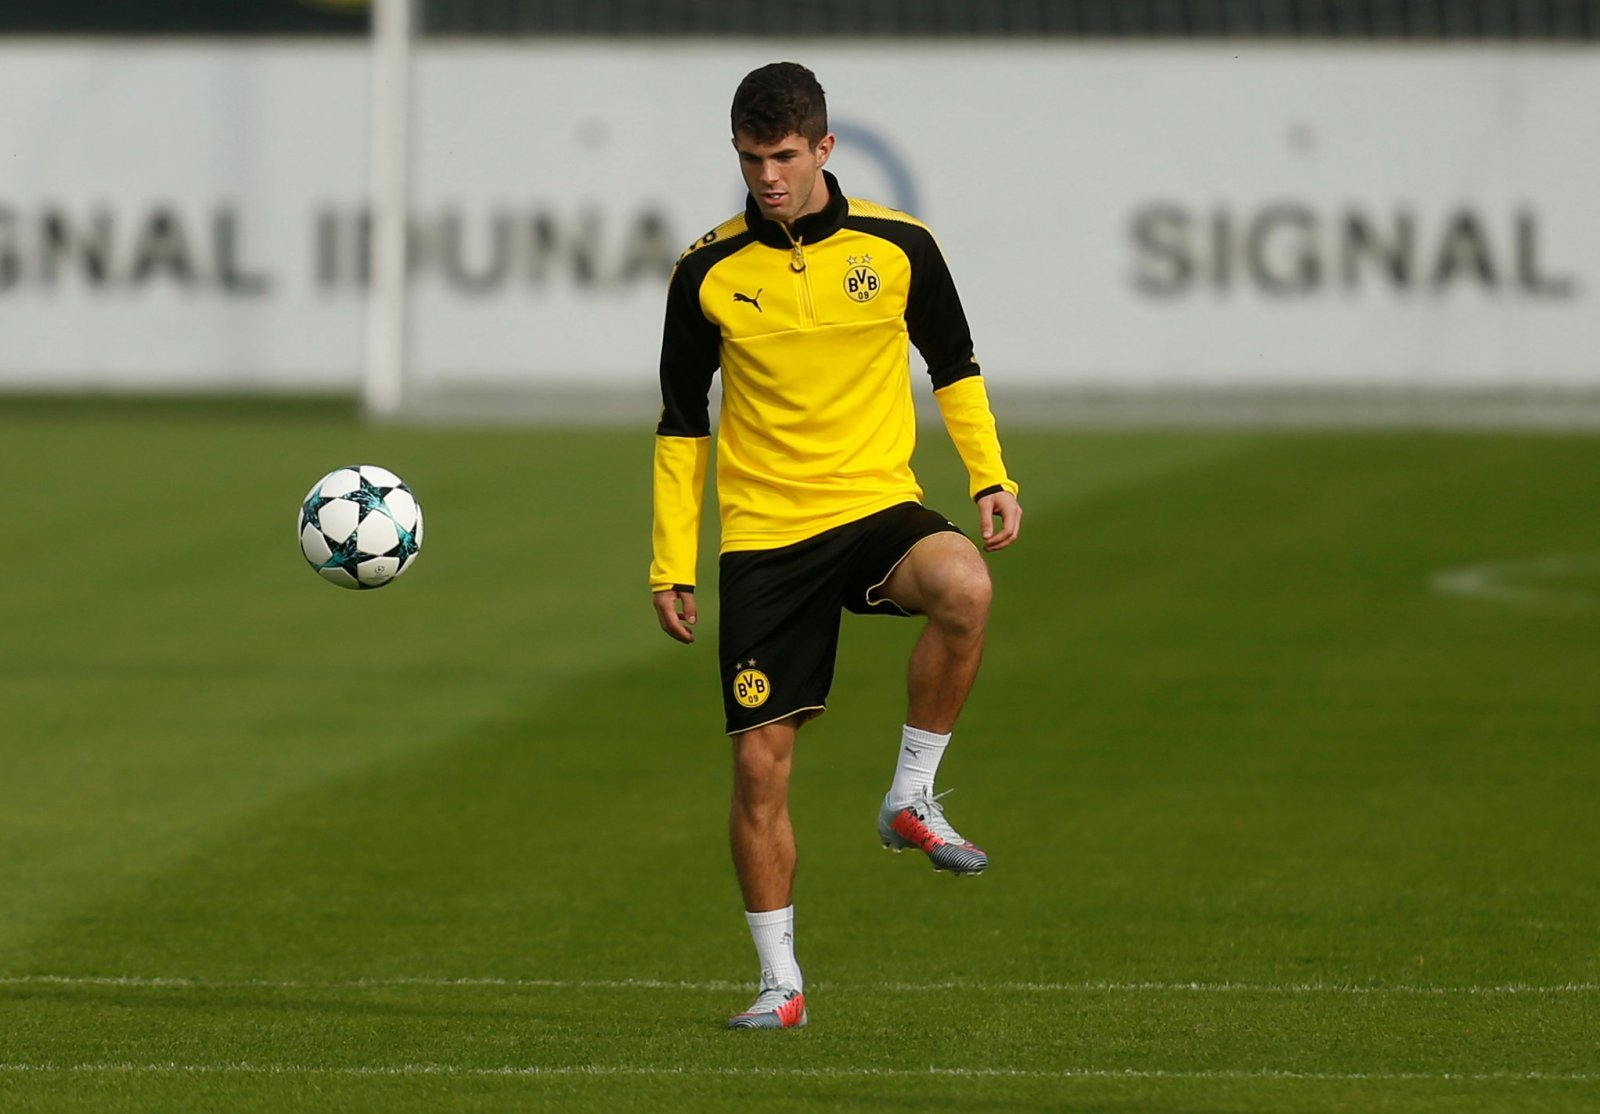 Tottenham fans on Twitter gutted to see Pulisic won't play against them in return leg